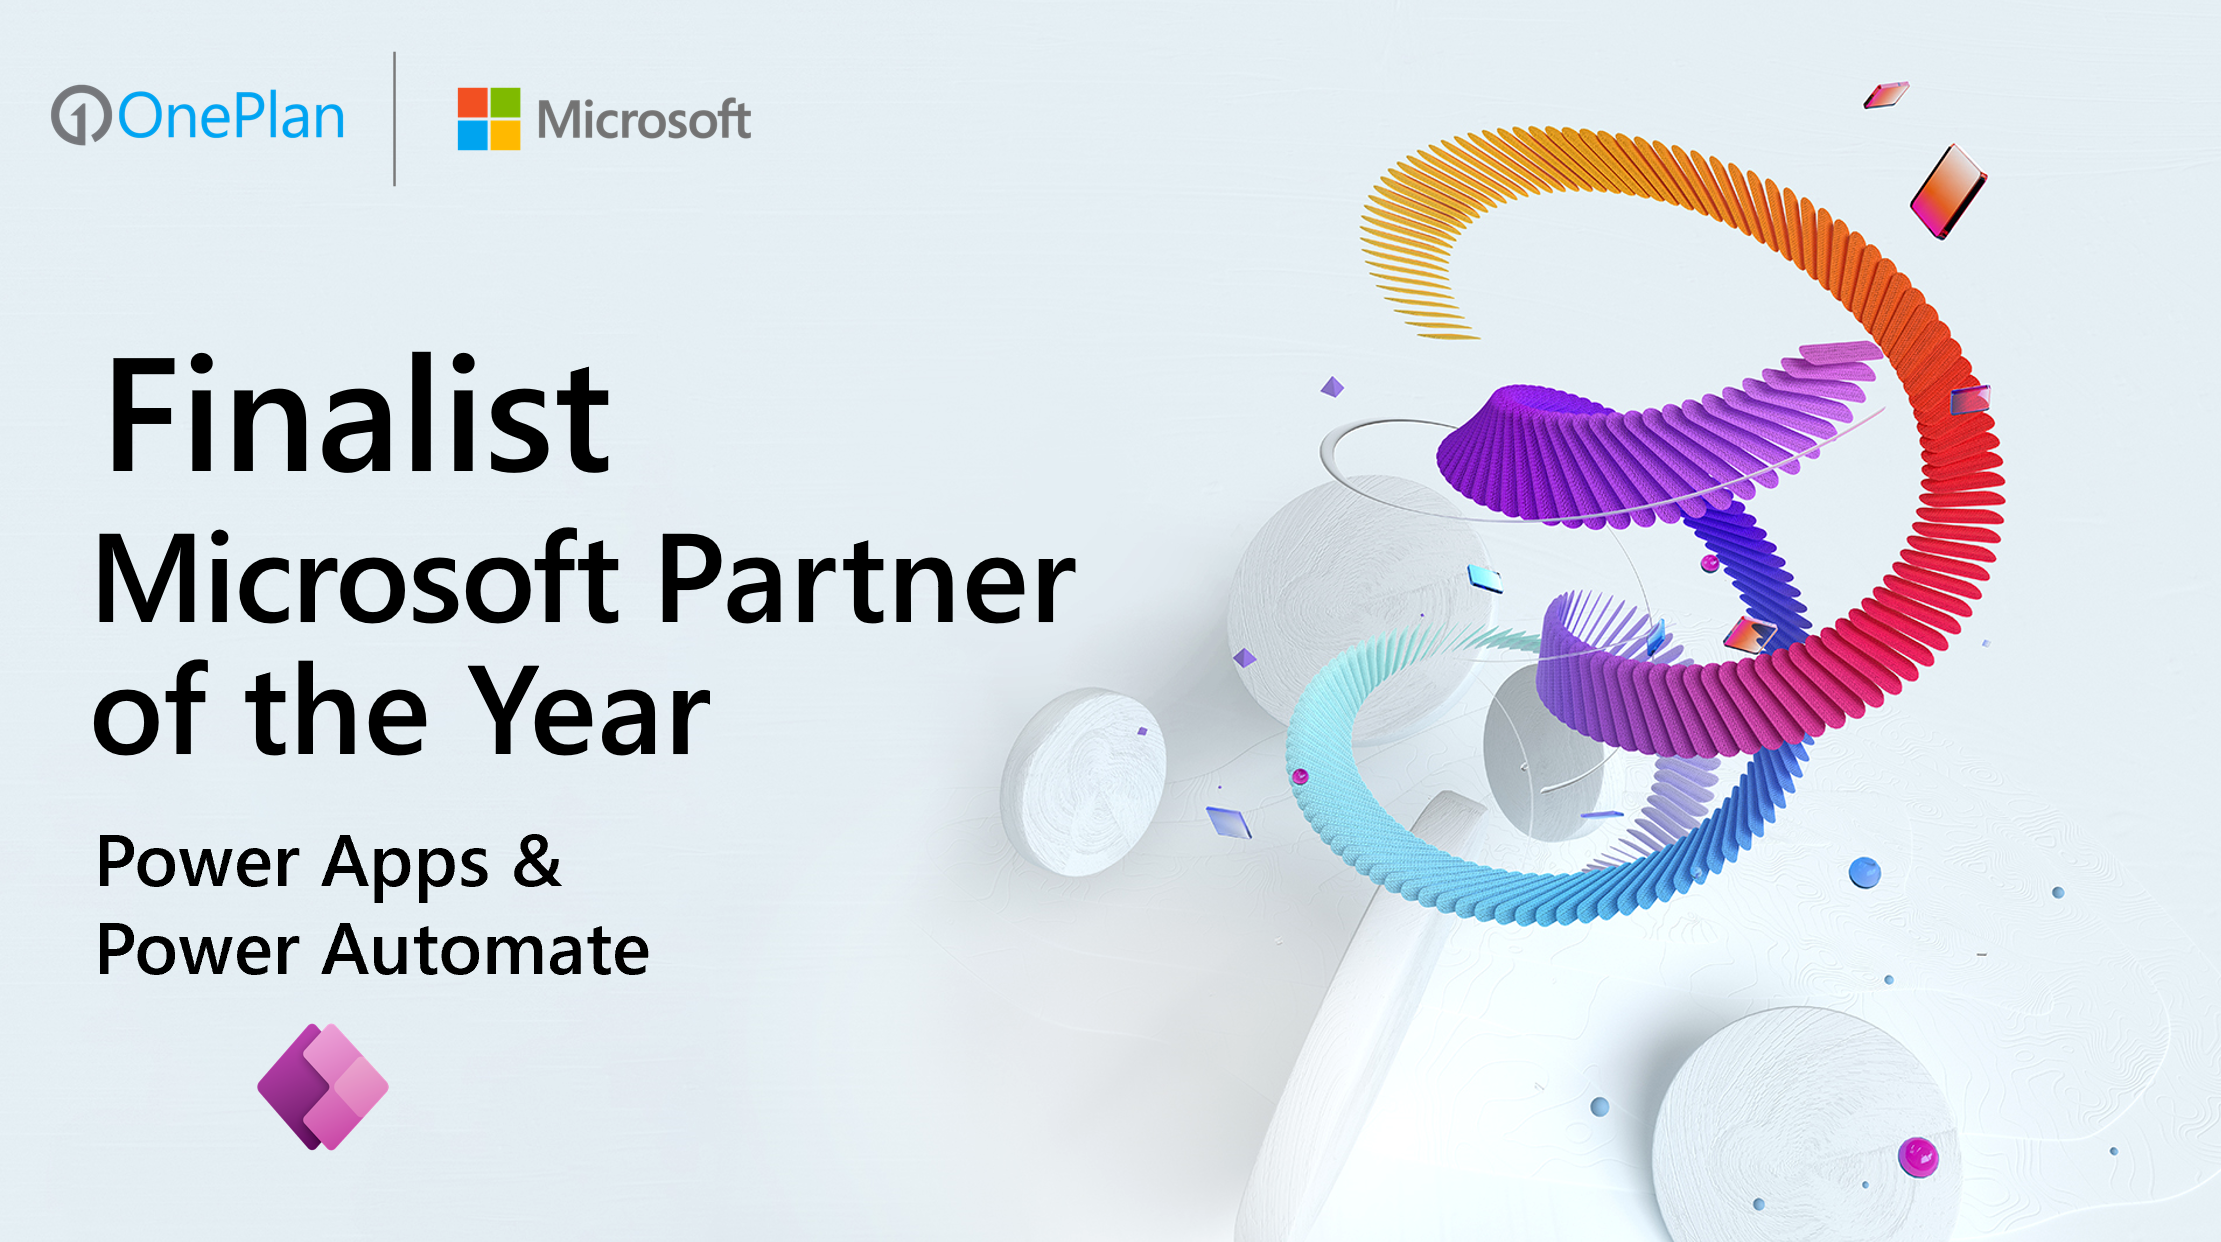 OnePlan Recognized as Finalist of 2021 Microsoft Partner of the Year for Power Apps and Power Automate